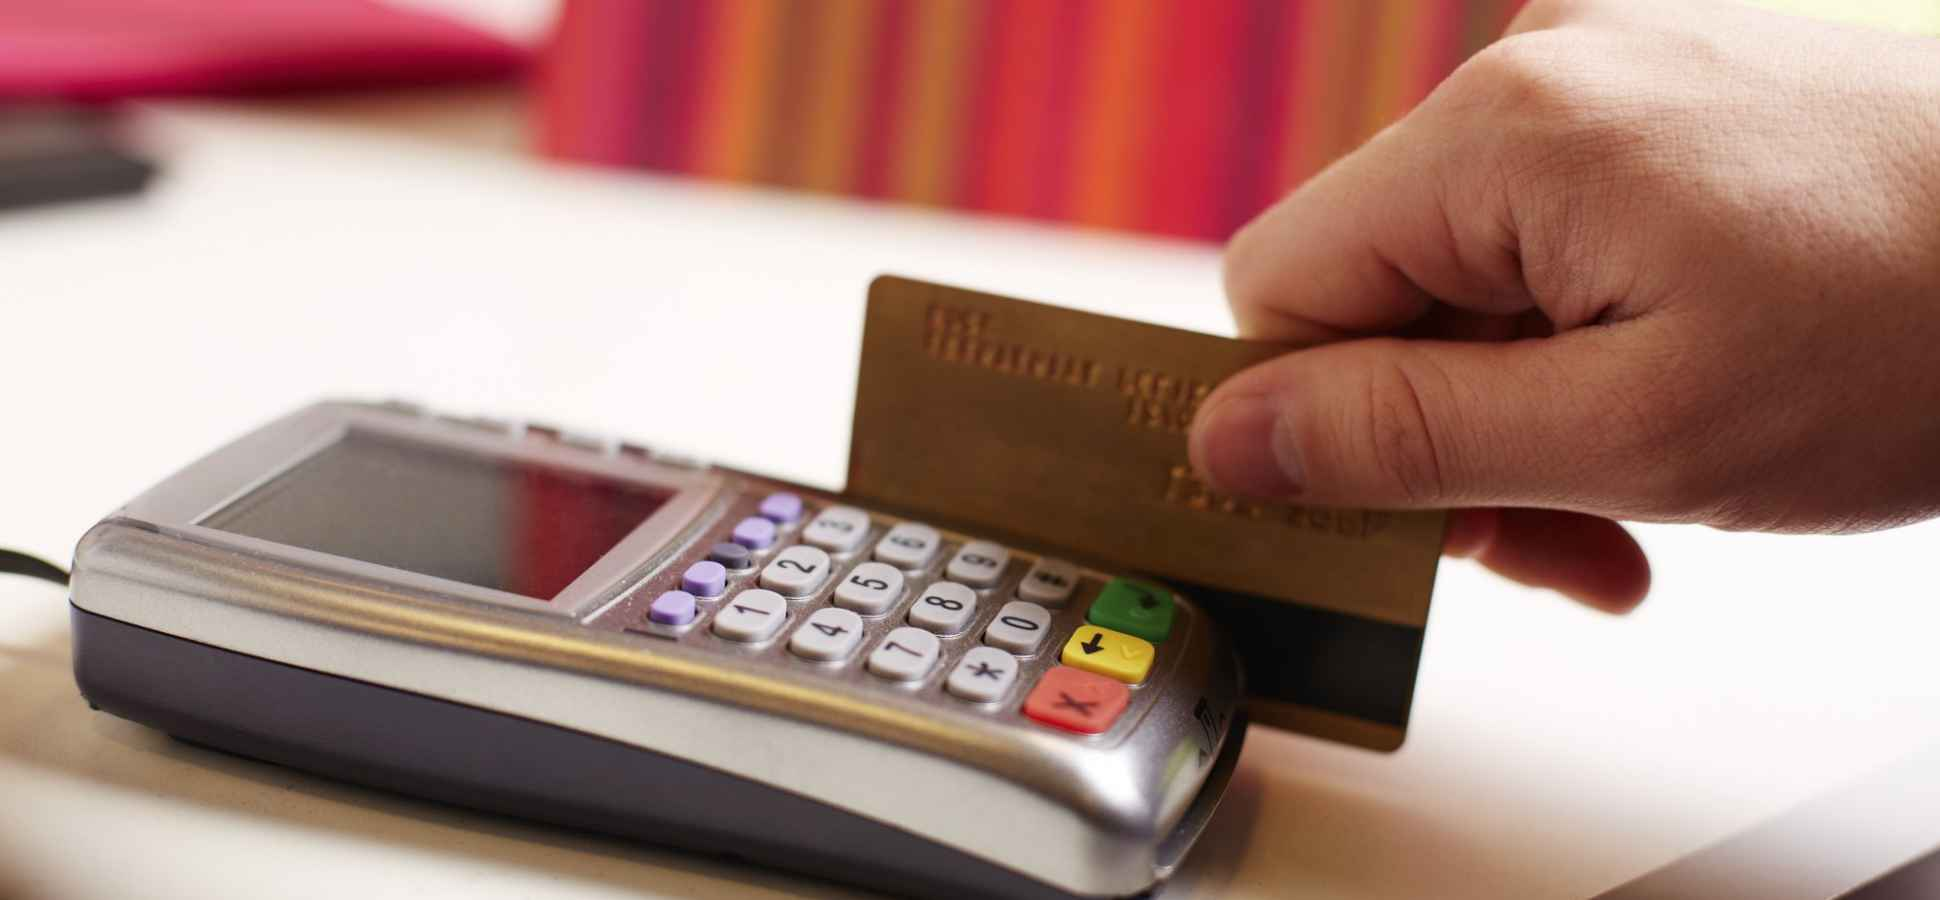 Top 4 Prepaid Cards for Business Owners | Inc.com